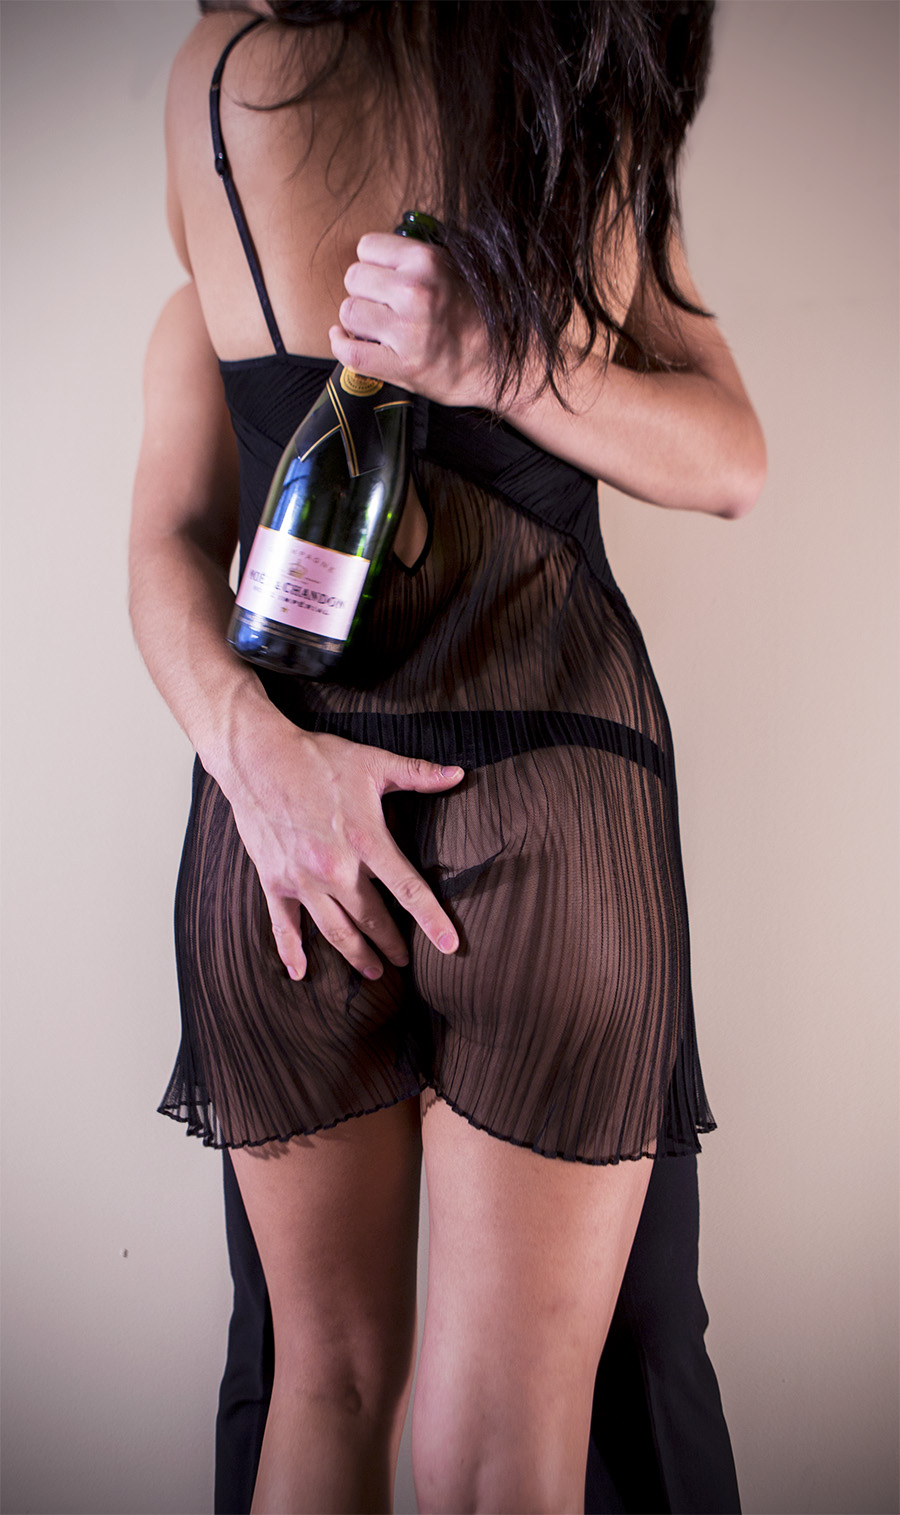 Amber_Shi_erotic_photography_Moet_Champagne_butt_sexy_makeout_couple